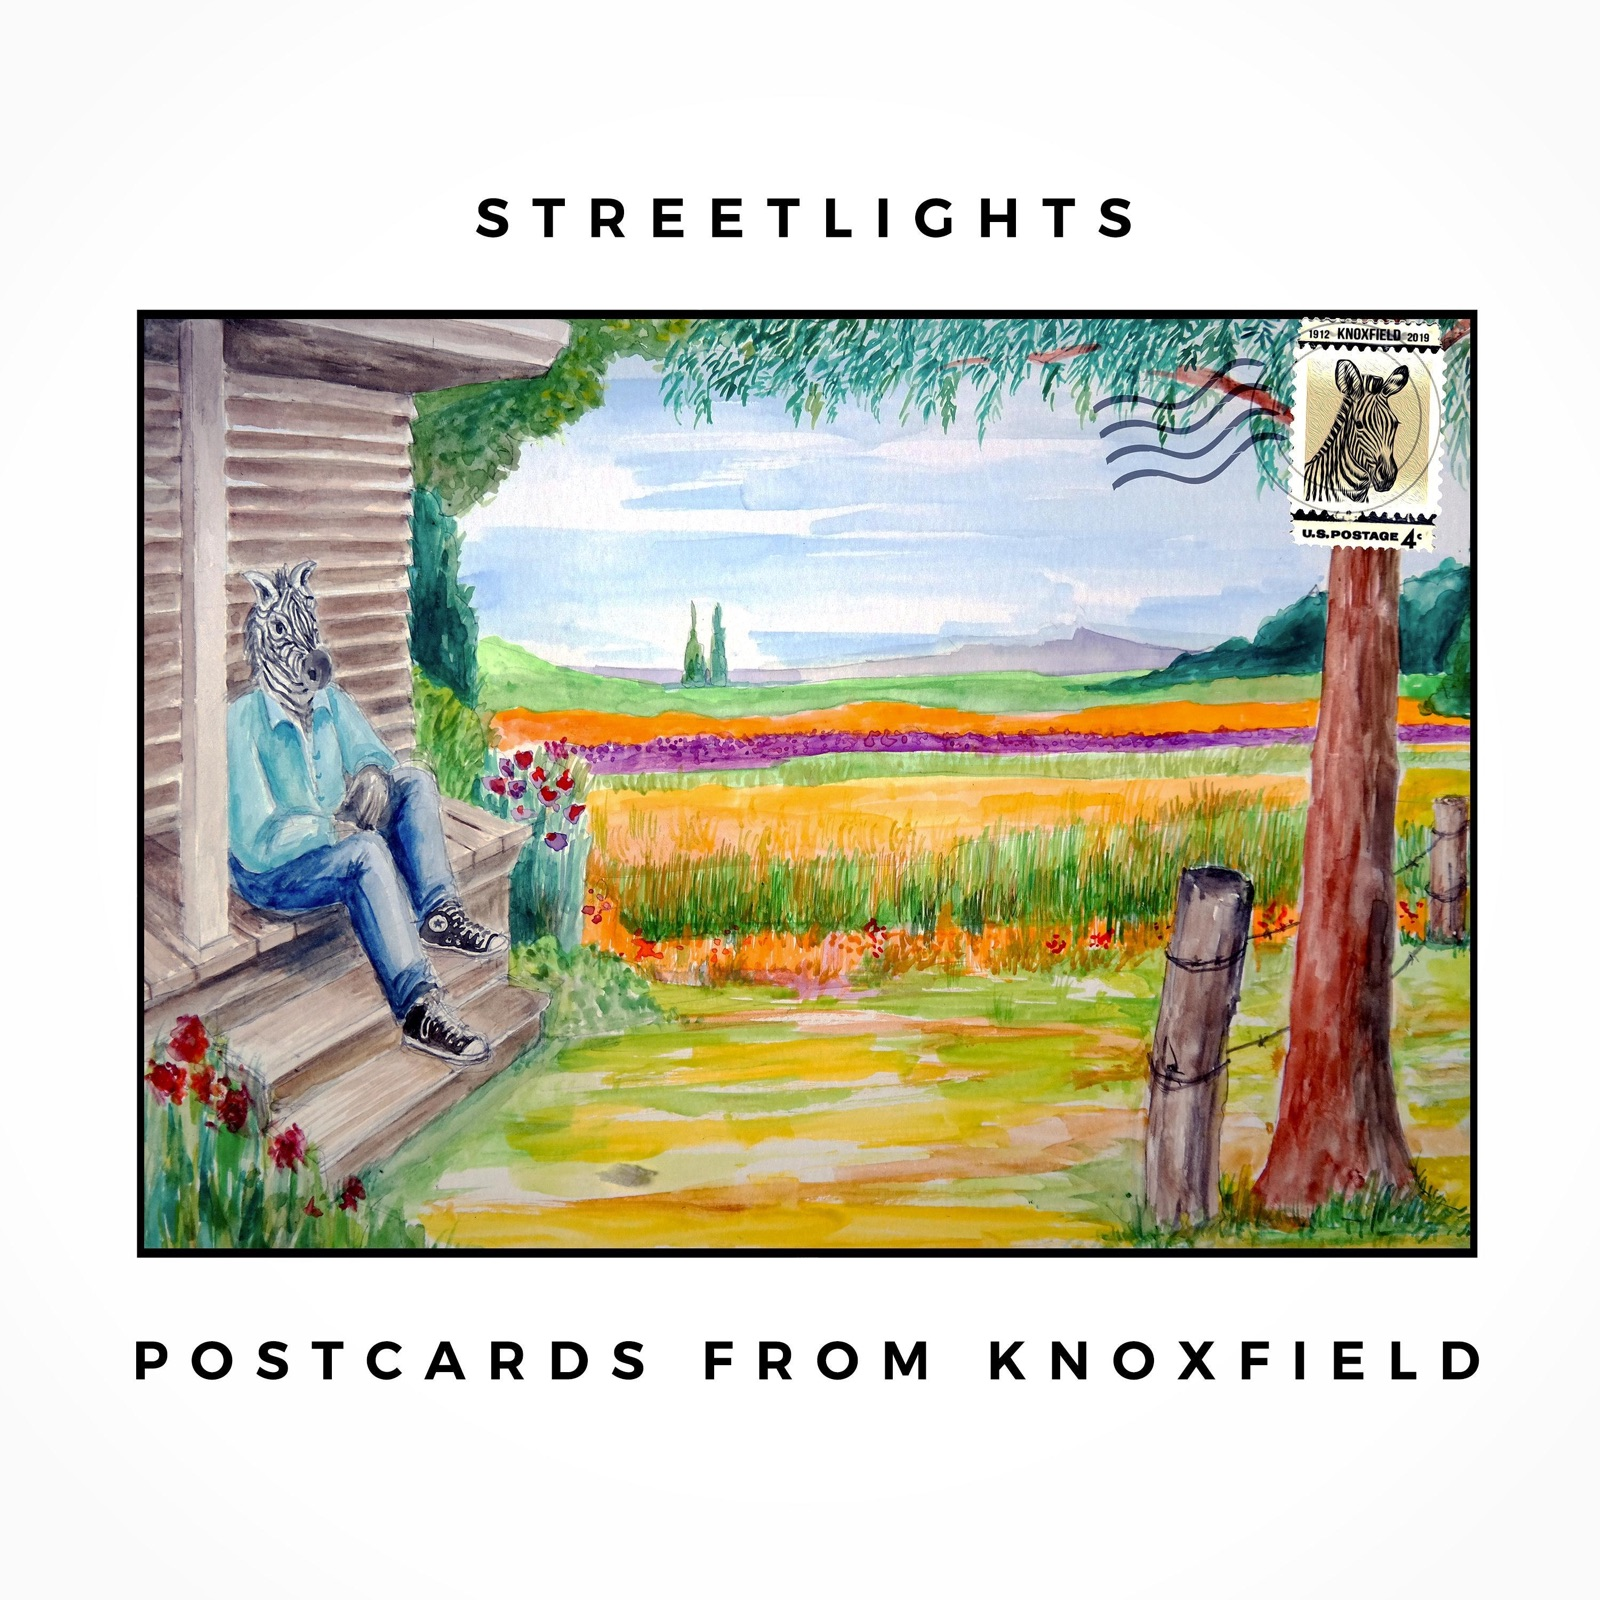 Postcards from Knoxfield